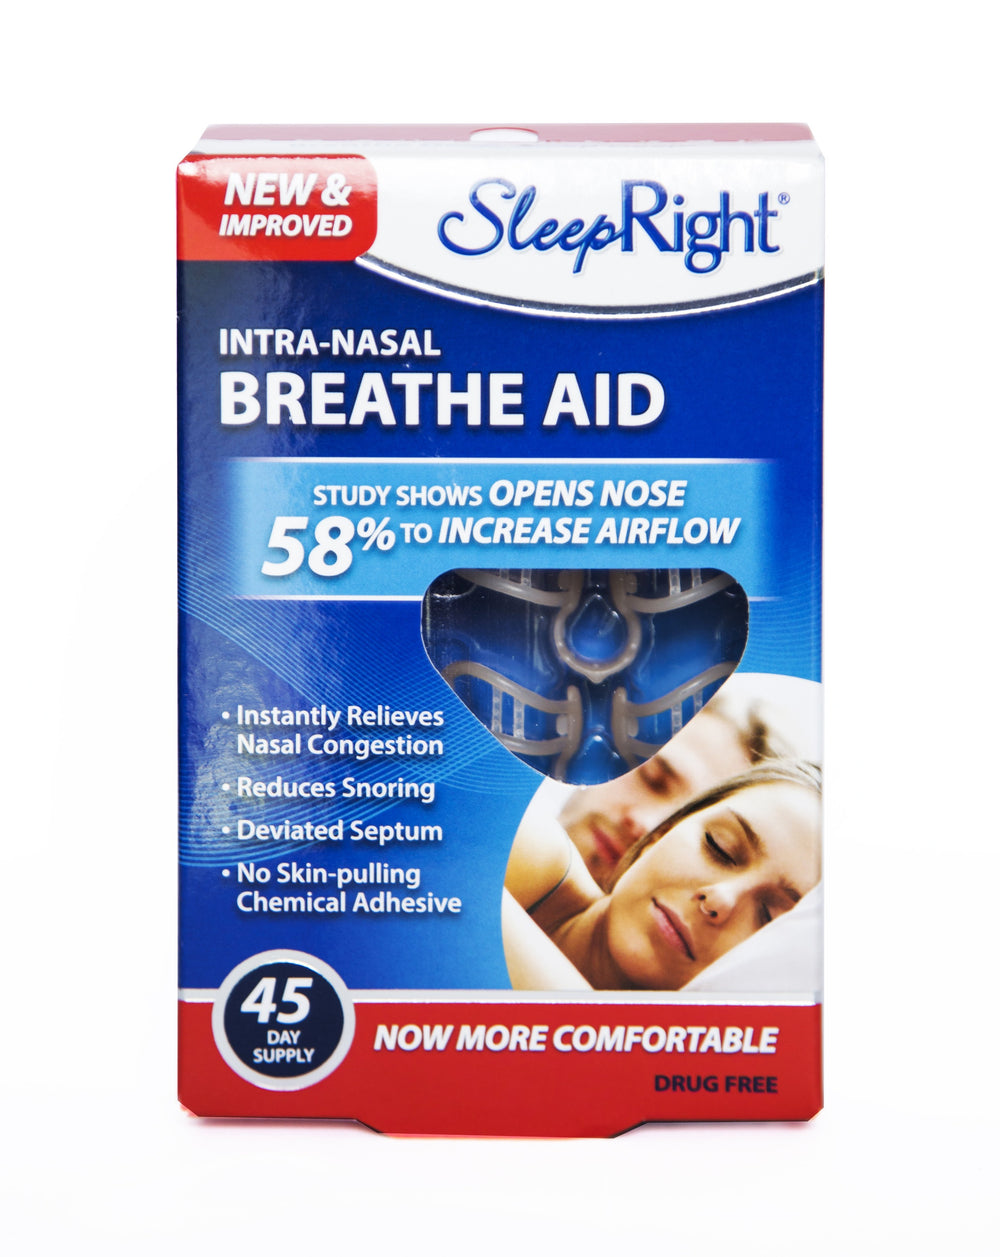 SleepRight Breathe Aid 3 pack Neusspreider - oude verpakking